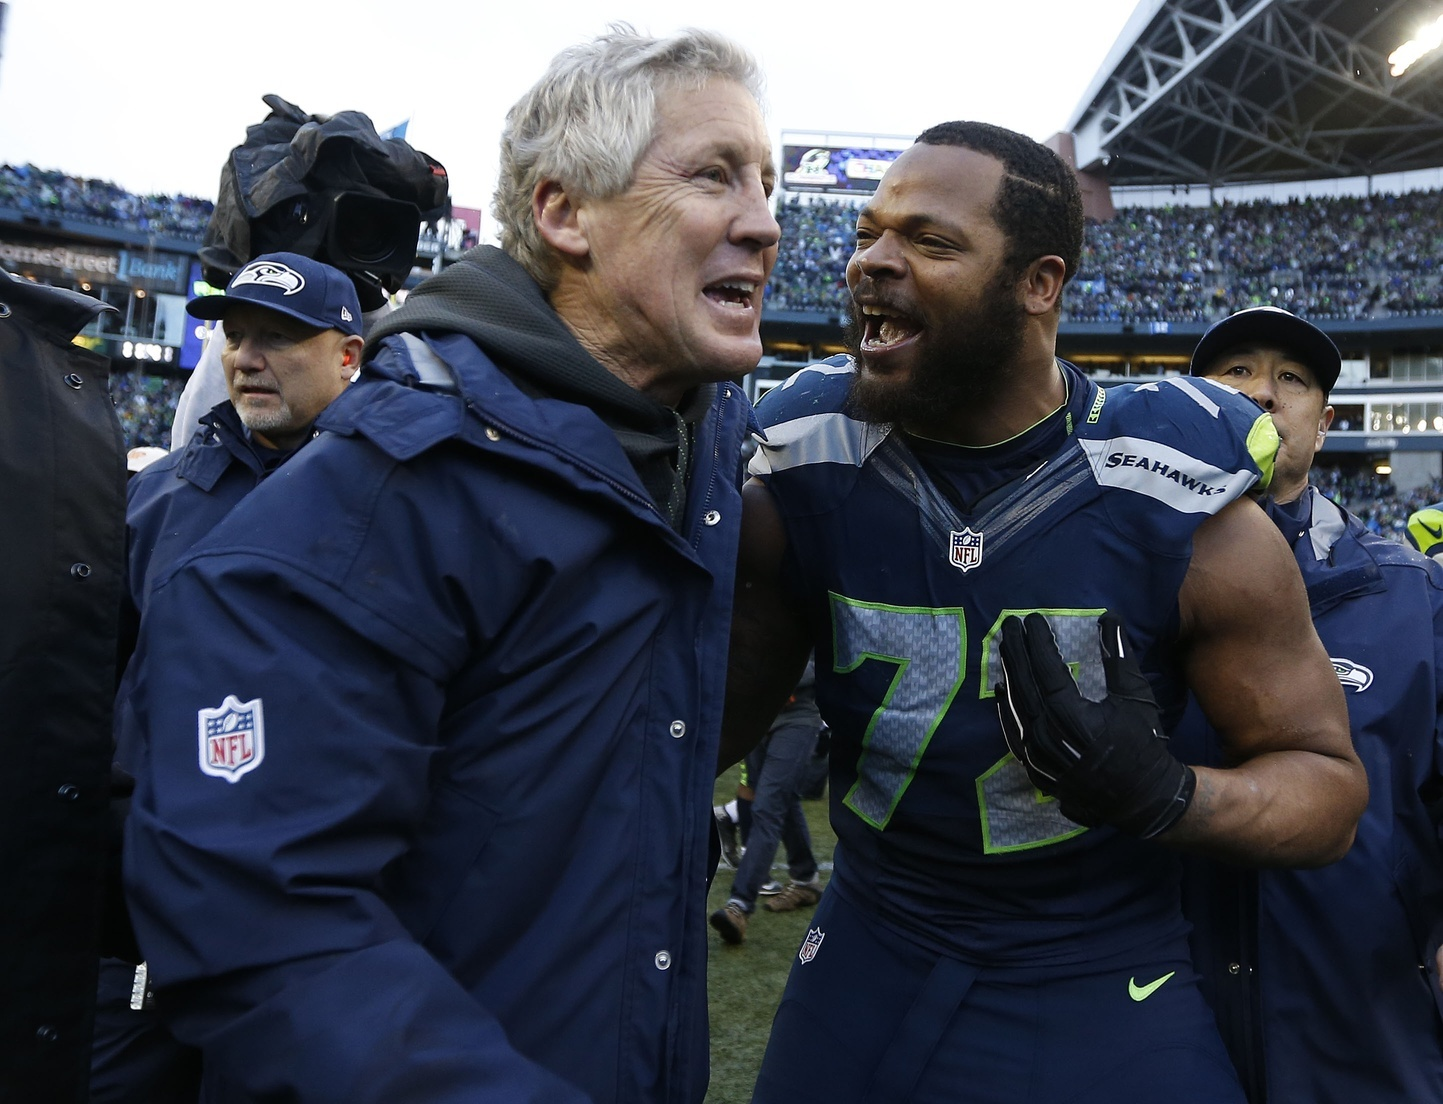 Seattle Seahawks Want To Trademark The Word 'Boom' And The Number '12'